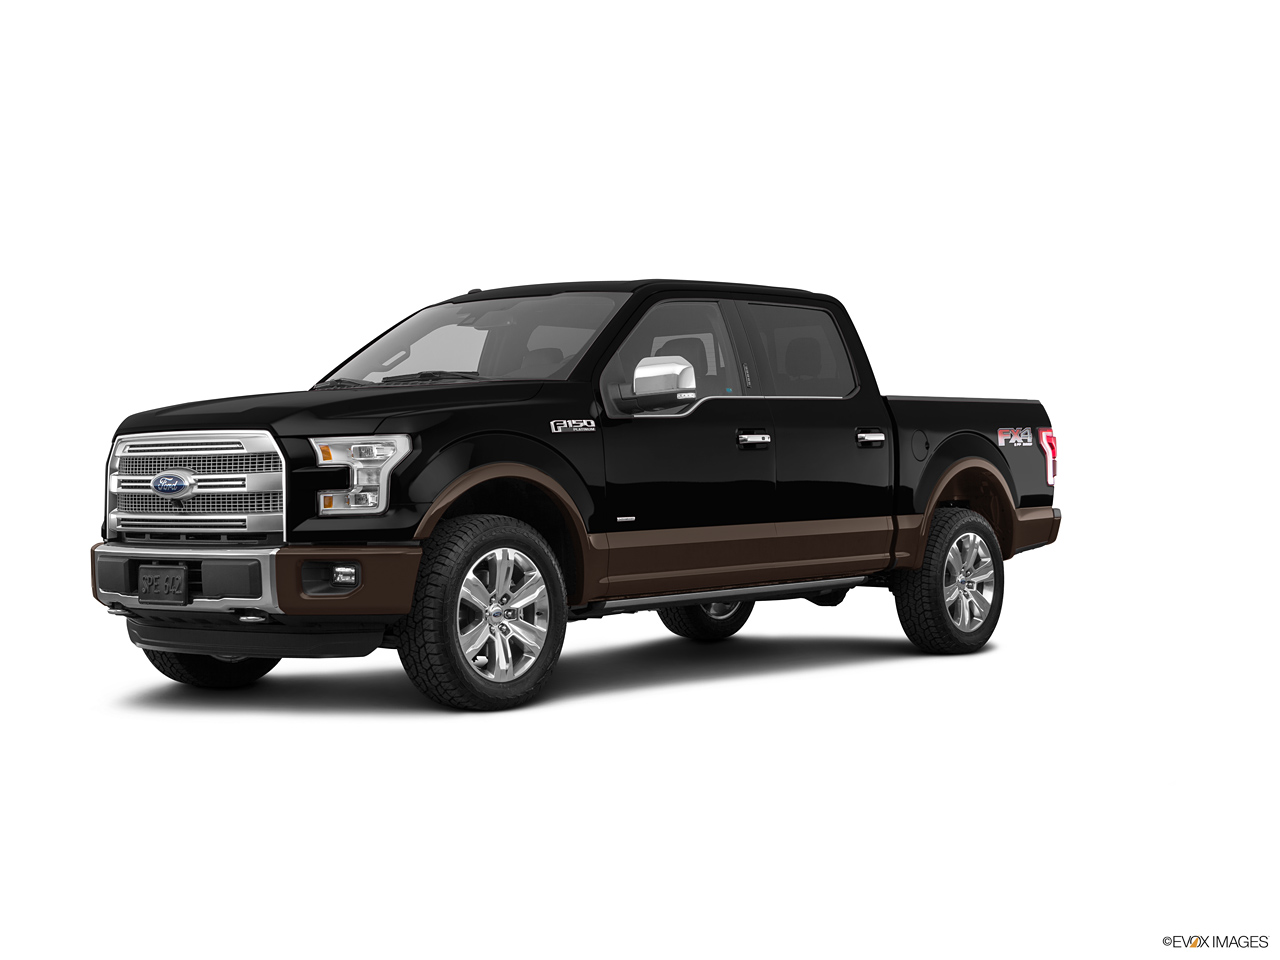 car pictures list for ford f 150 2017 3 5l ecoboost crew cab platinum fx4 luxury pack uae. Black Bedroom Furniture Sets. Home Design Ideas